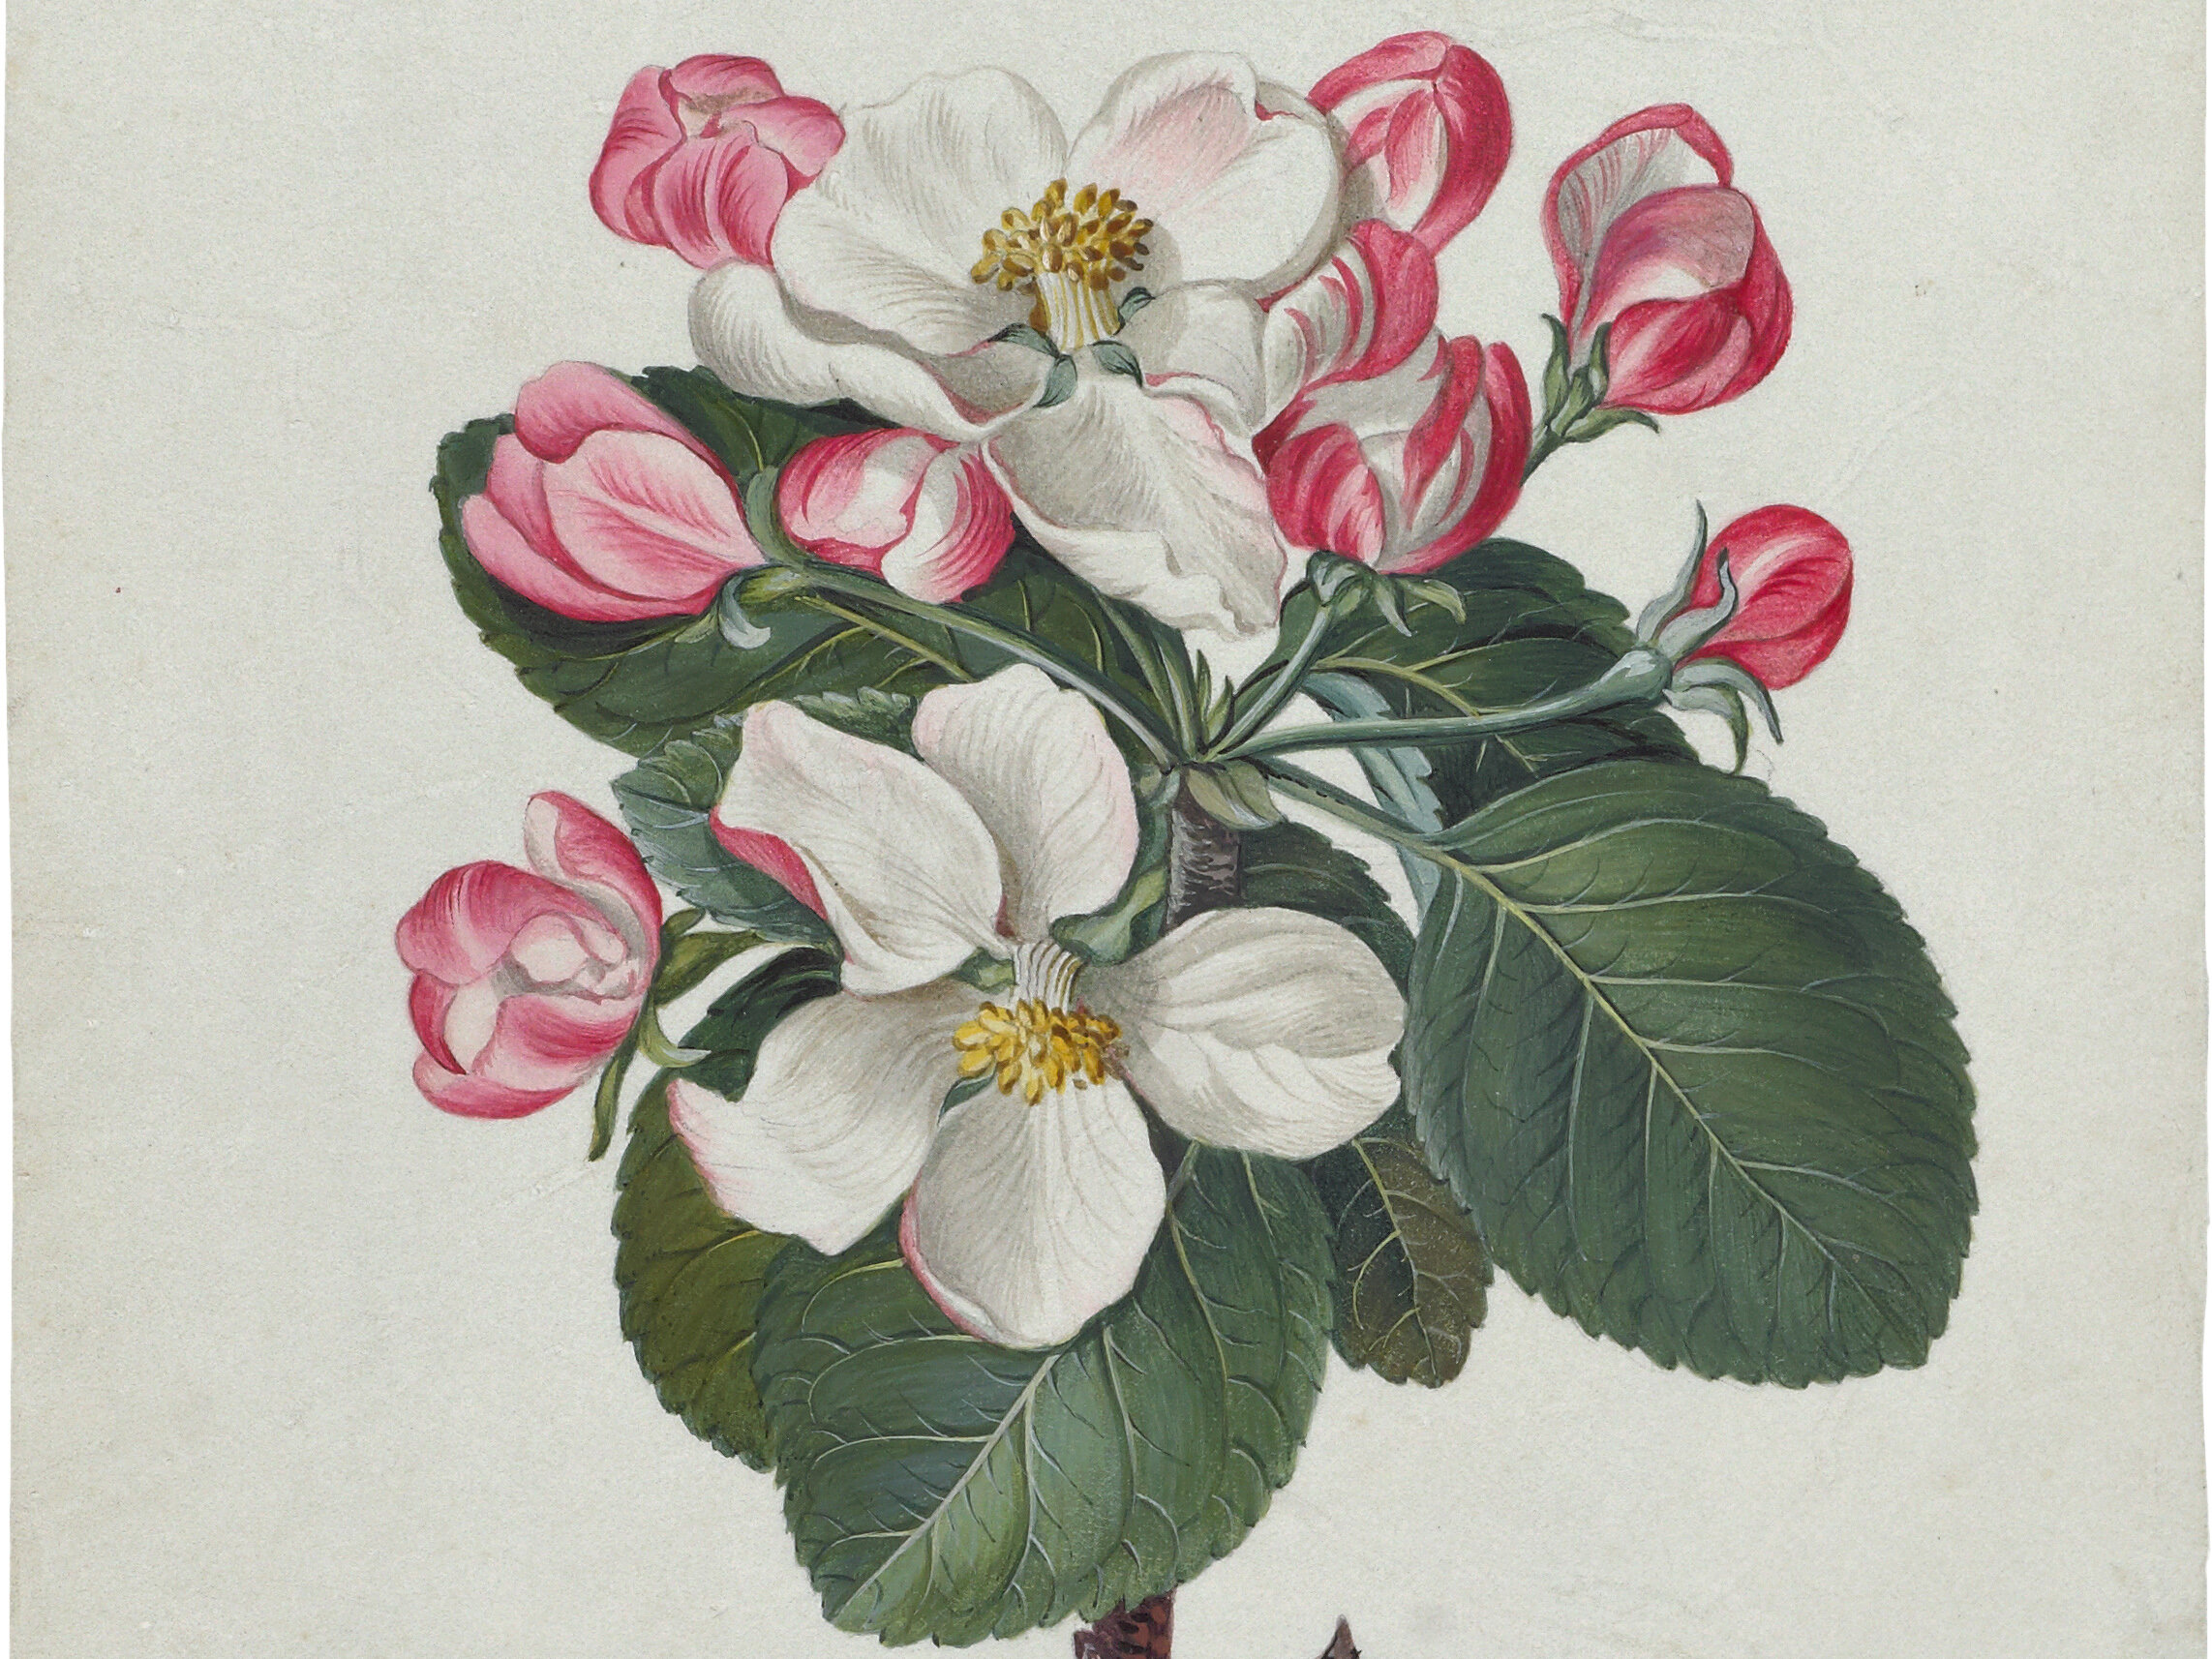 Botanical Artist in Residence Programs open to visual artists. Deadline to apply is July 15.